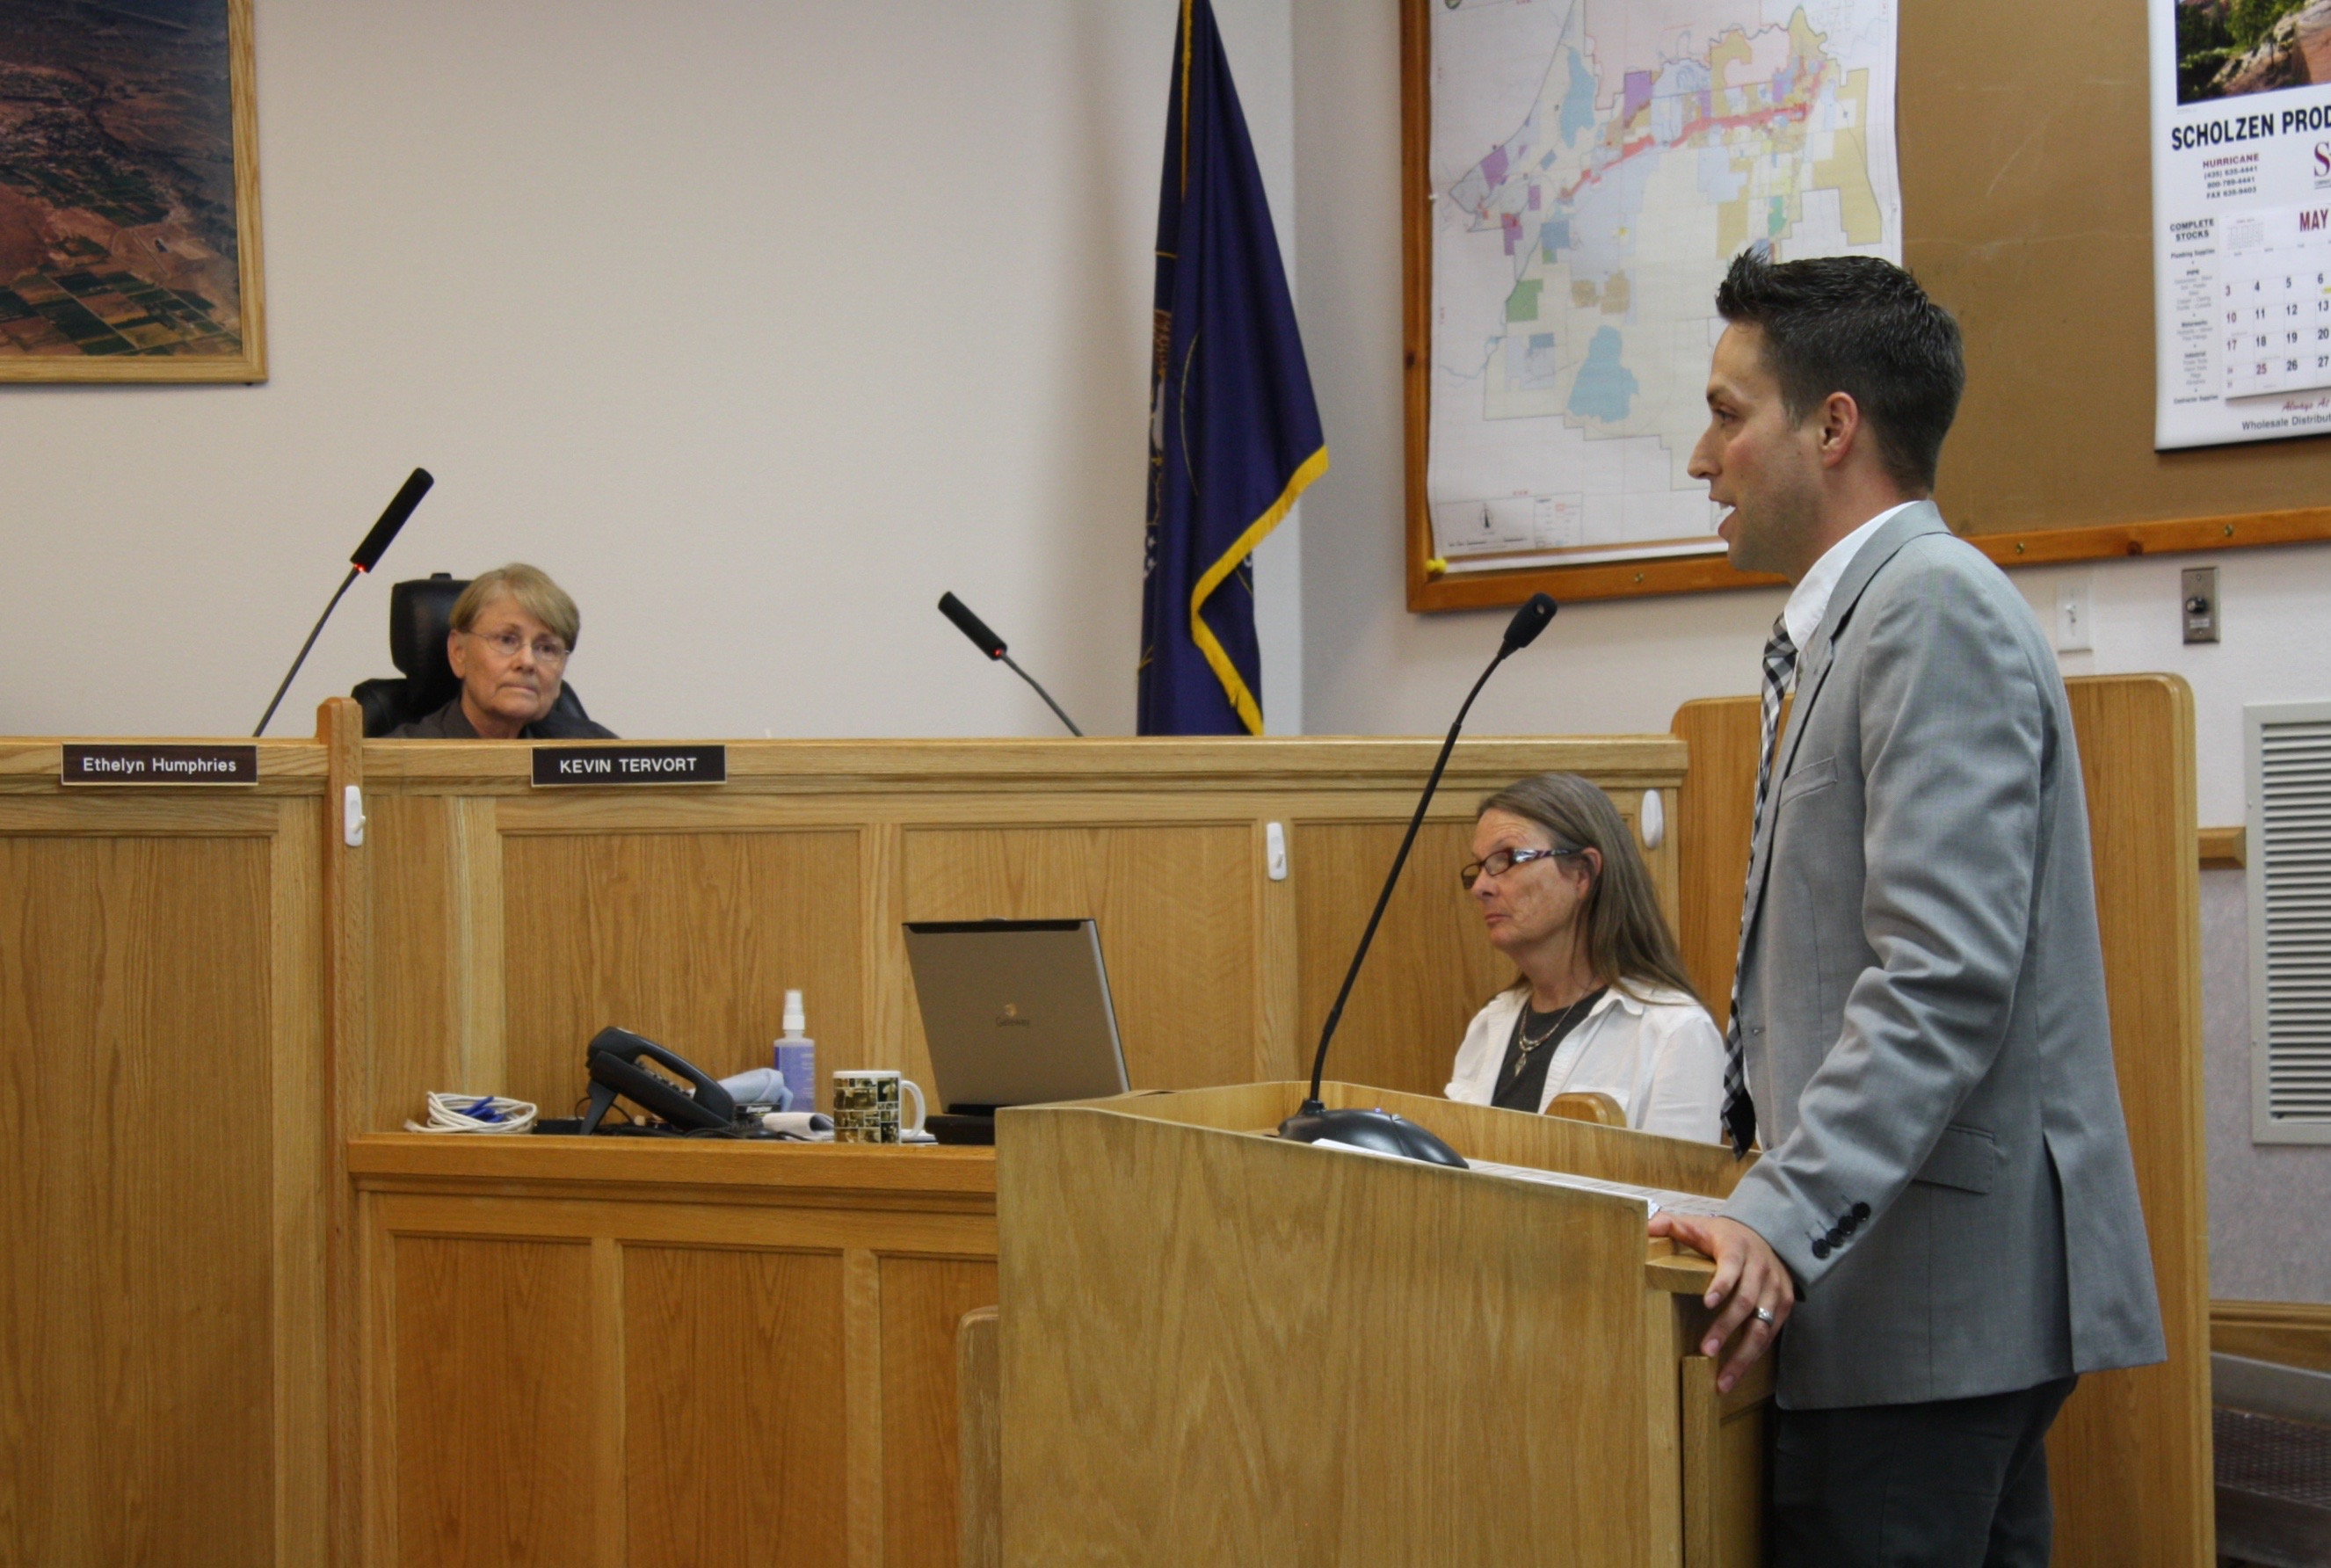 Attorney Eric Carson addresses Hurricane City Council on behalf of his client, Stephen Ward of Barista's Restaurant, requesting a hard-alcohol liquor license, Hurricane City Council Chambers, Hurricane, Utah, May 7, 2015 | Photo by Reuben Wadsworth, St. George News